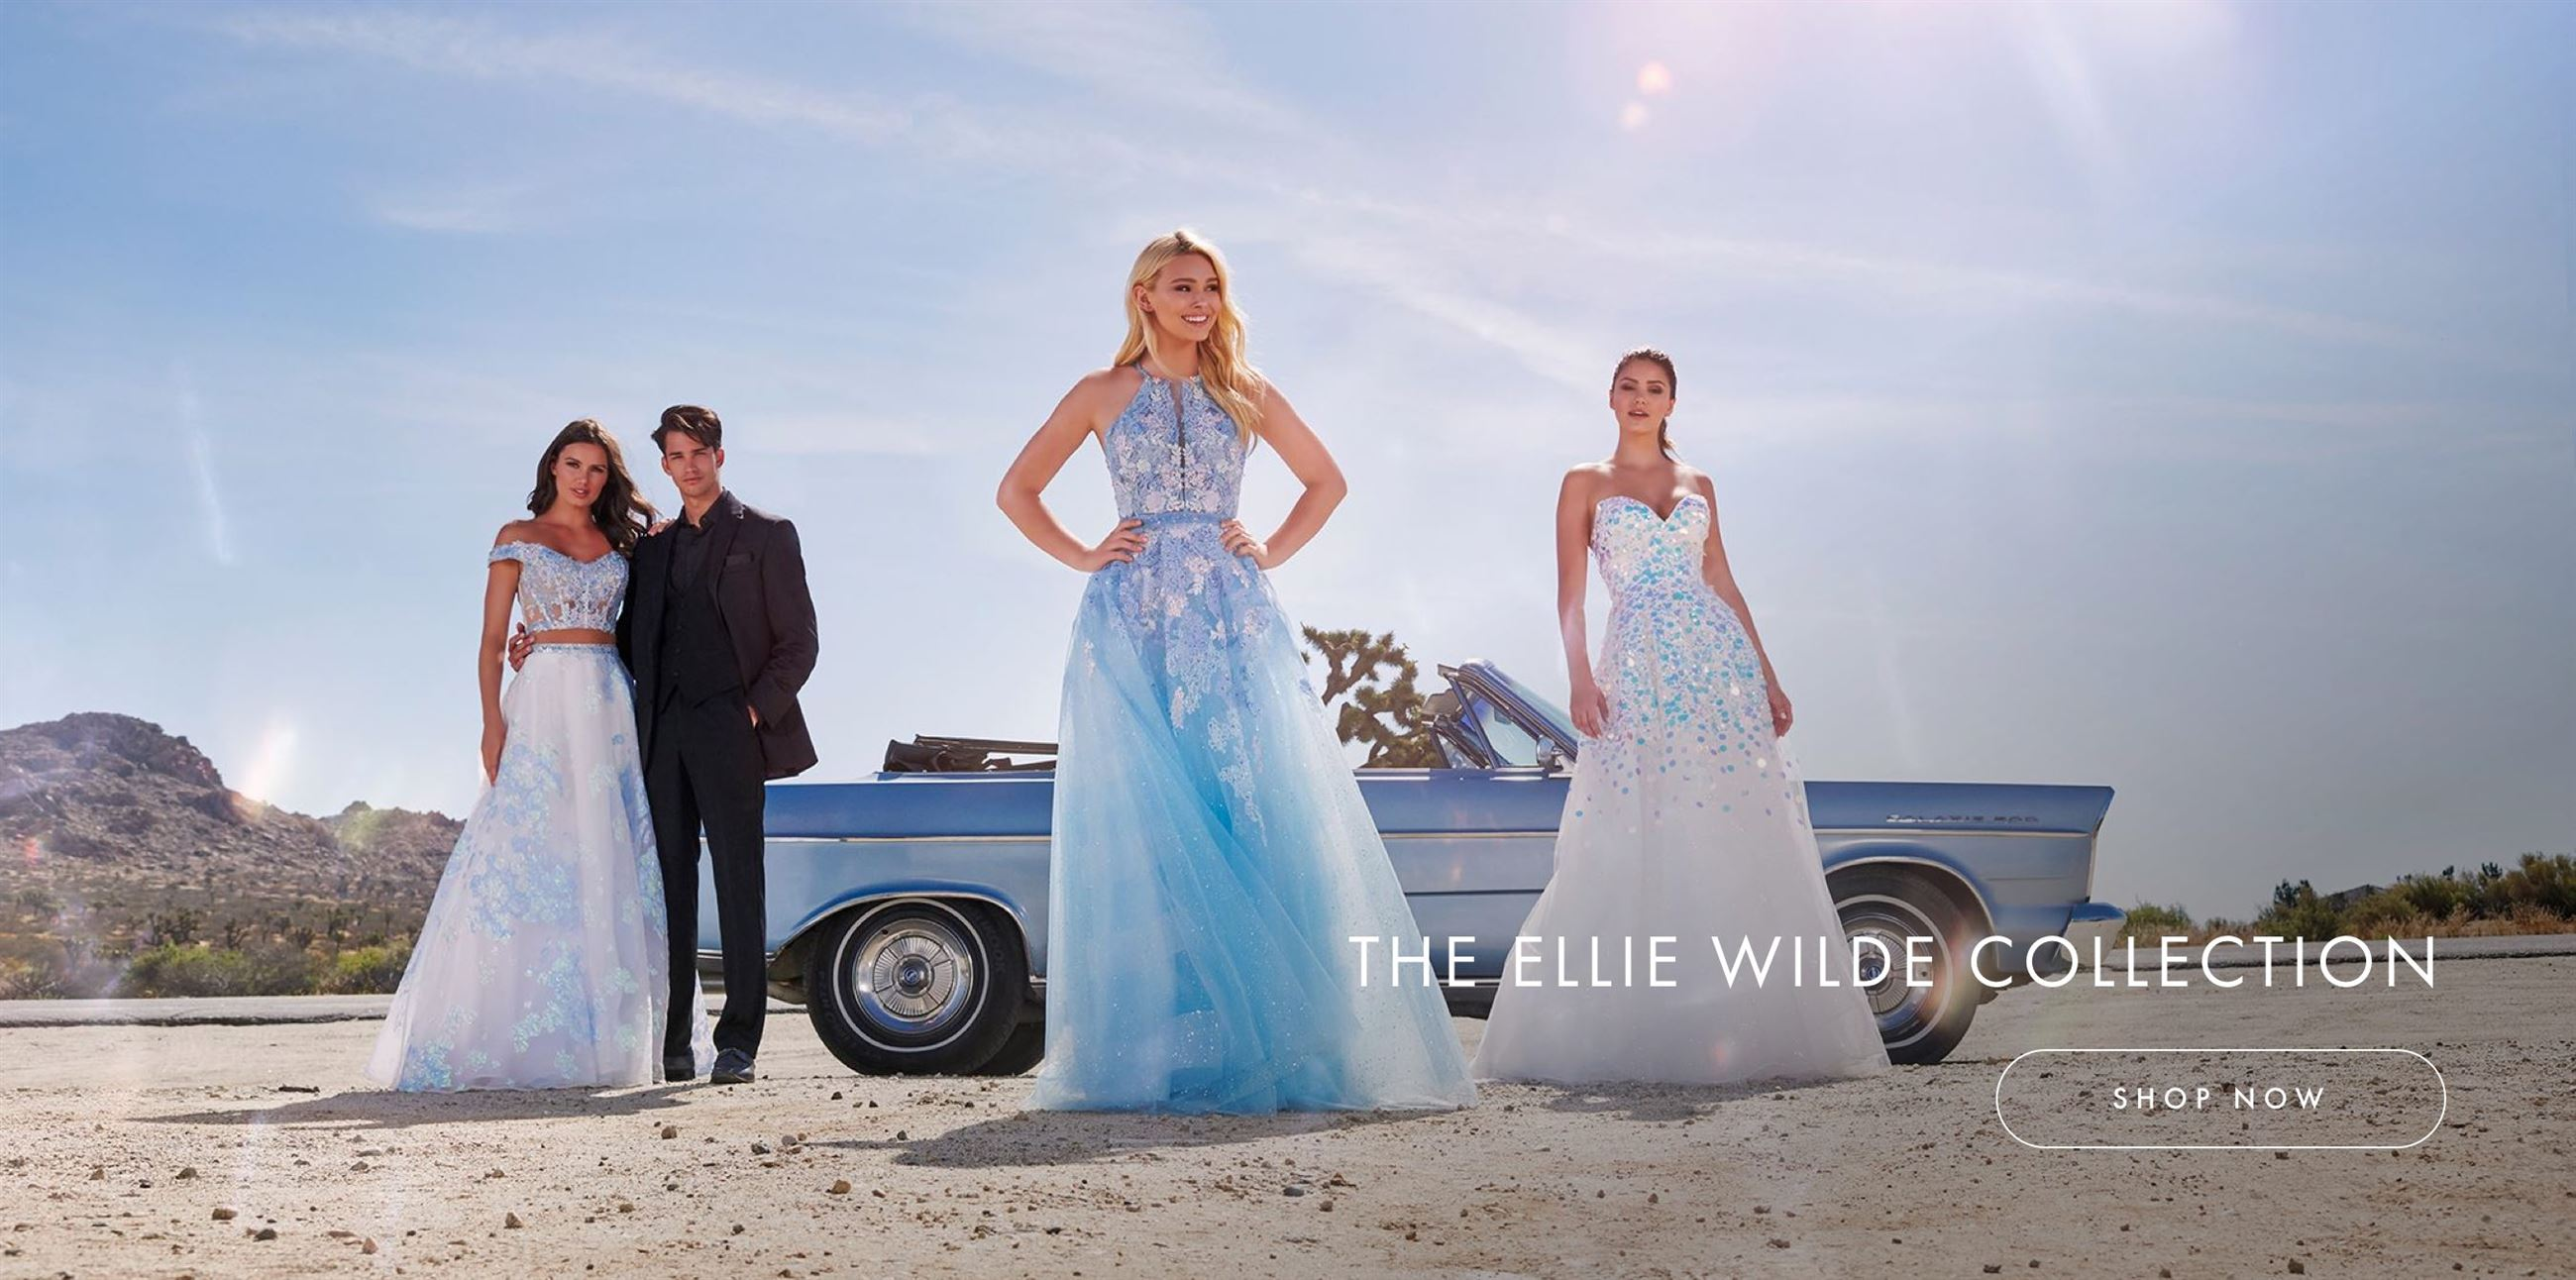 Ellie Wilde Prom Dresses at One Enchanted Evening in Pennsylvania